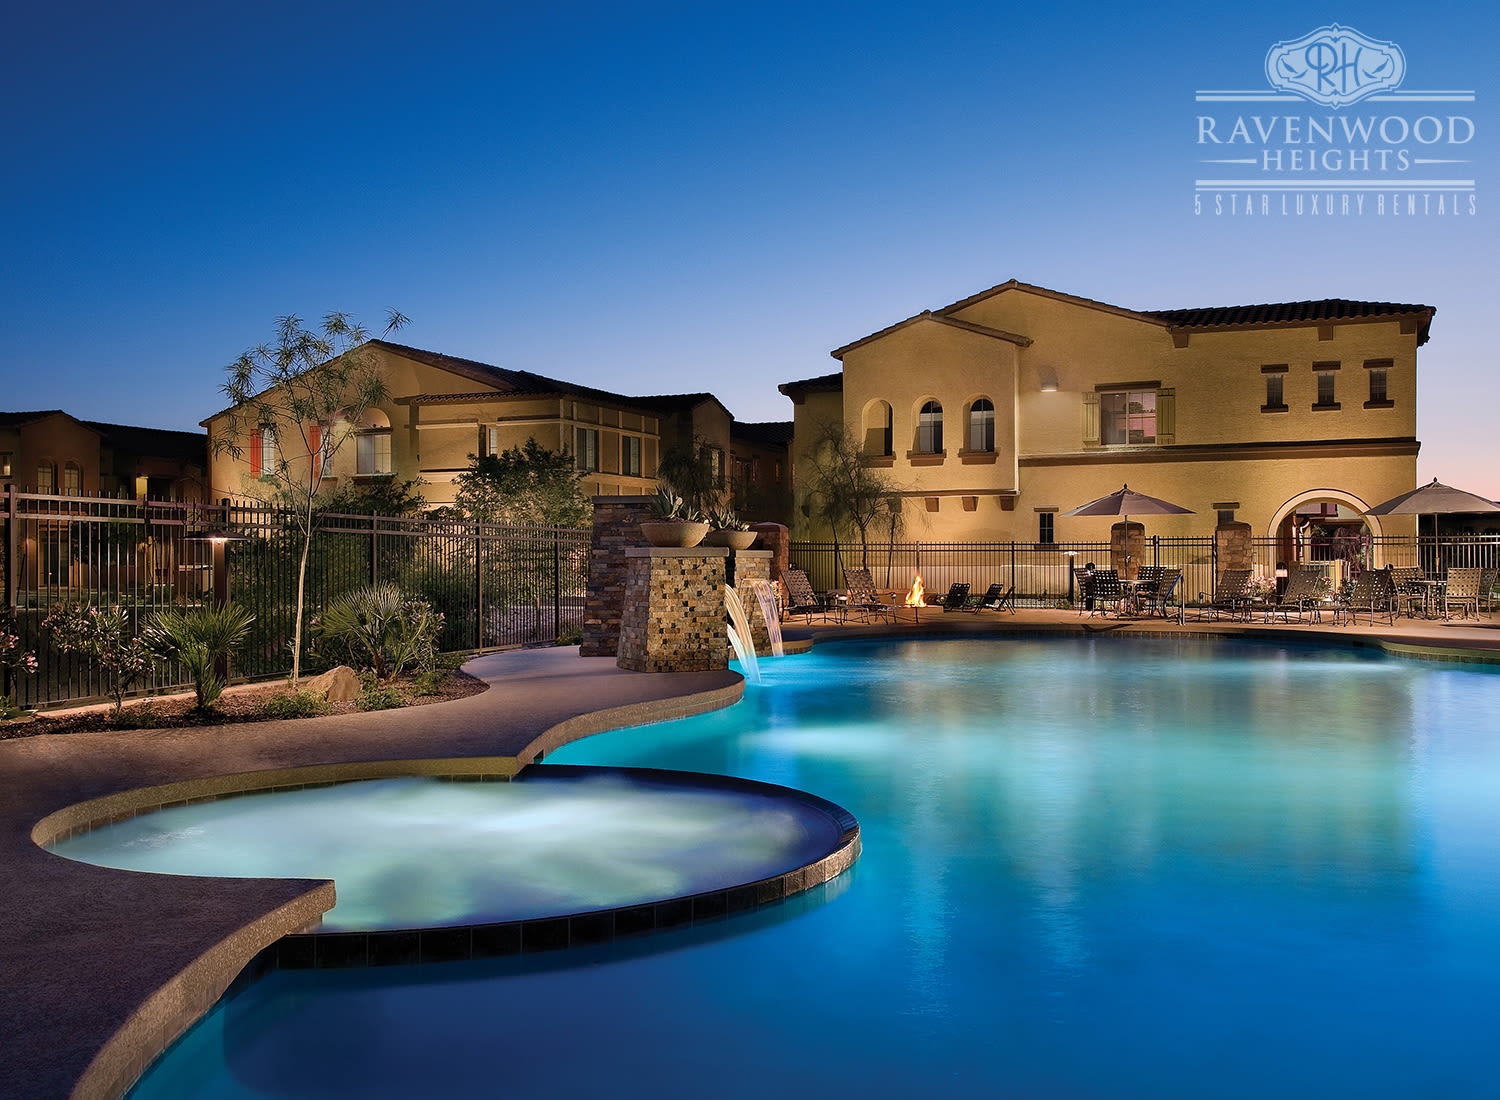 Ravenwood Heights apartments in Tempe, Arizona